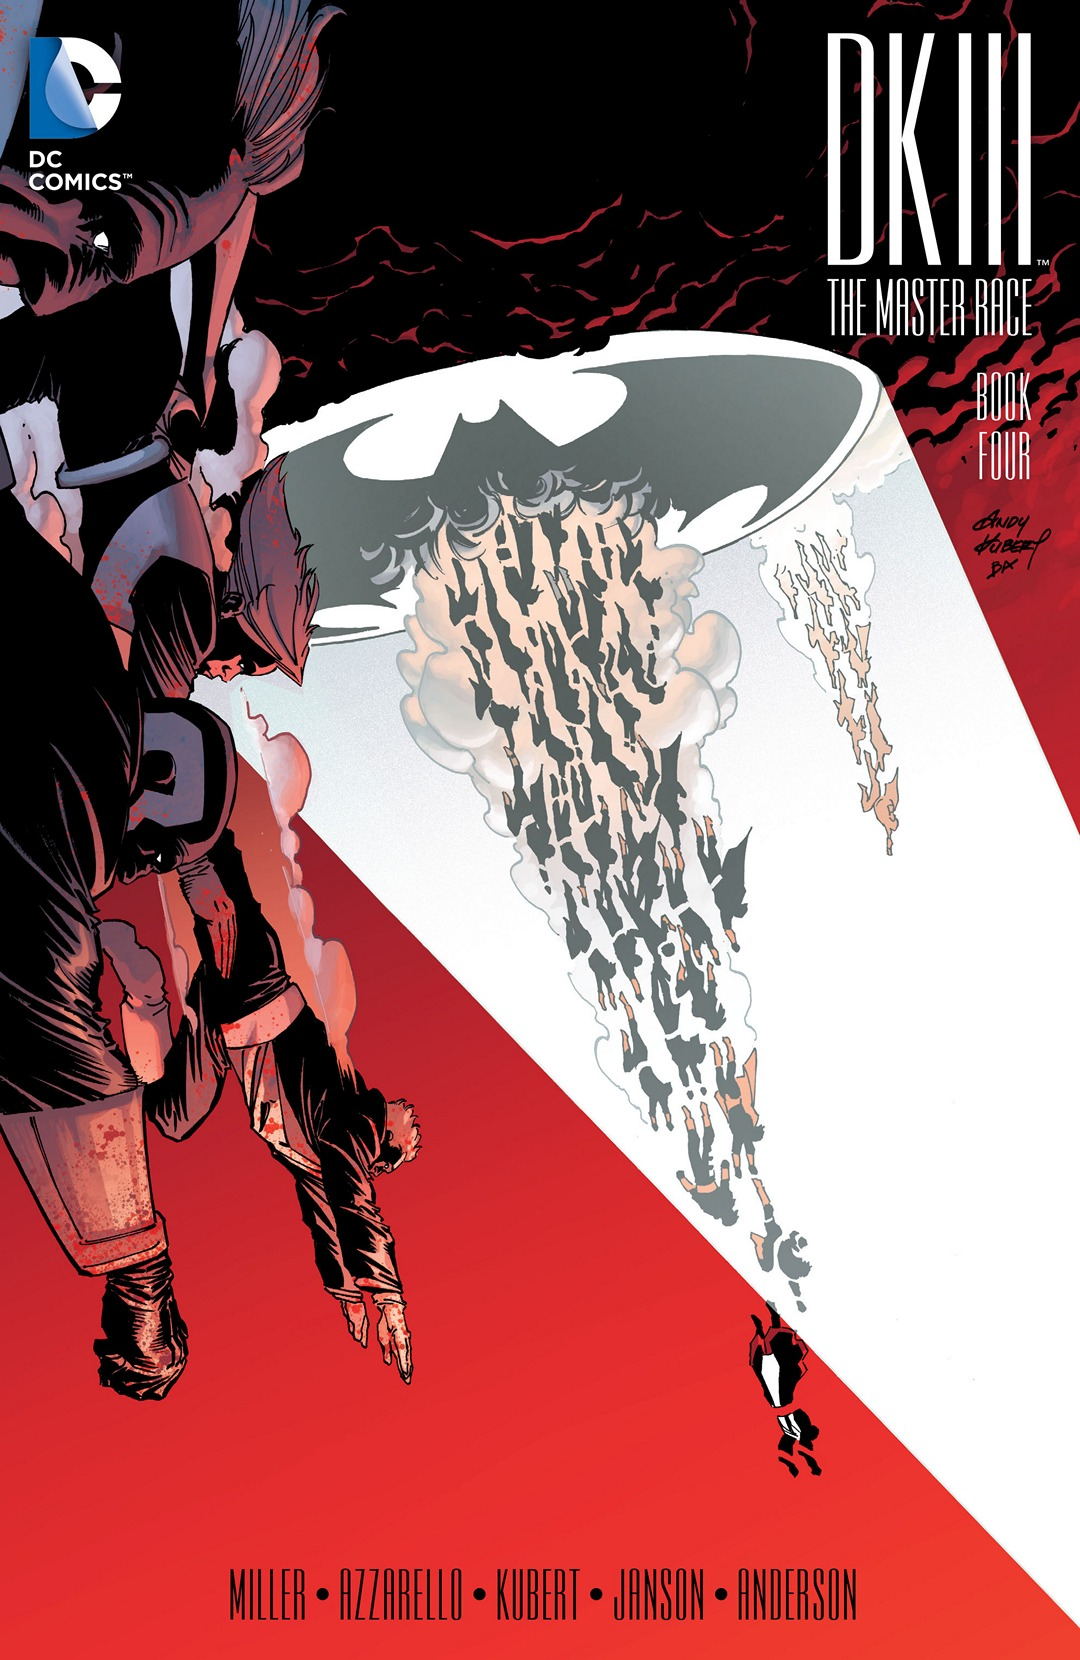 Dark Knight III: The Master Race Vol 1 4